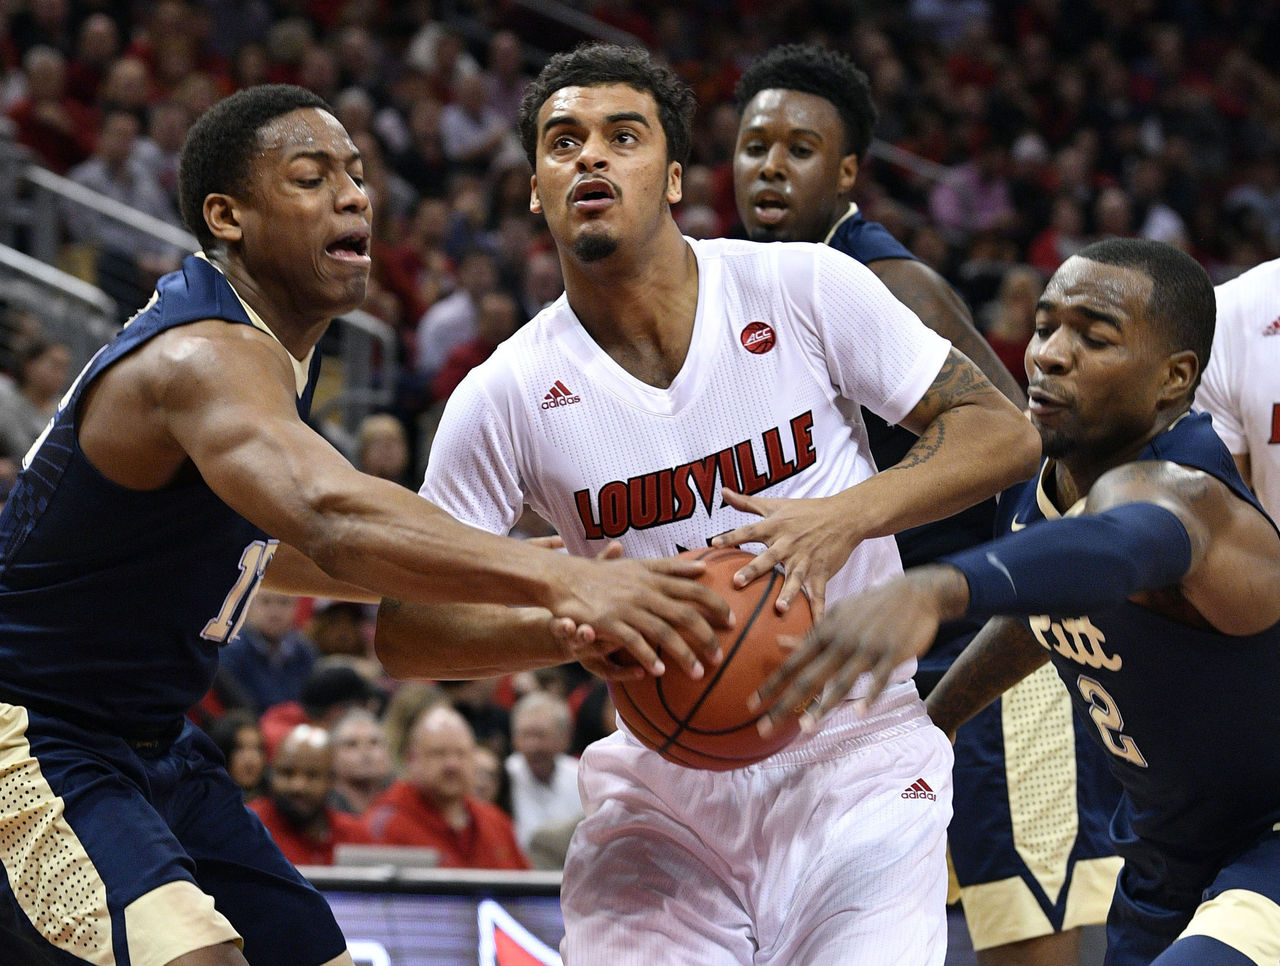 Cropped 2017 01 12t023710z 212974751 nocid rtrmadp 3 ncaa basketball pittsburgh at louisville